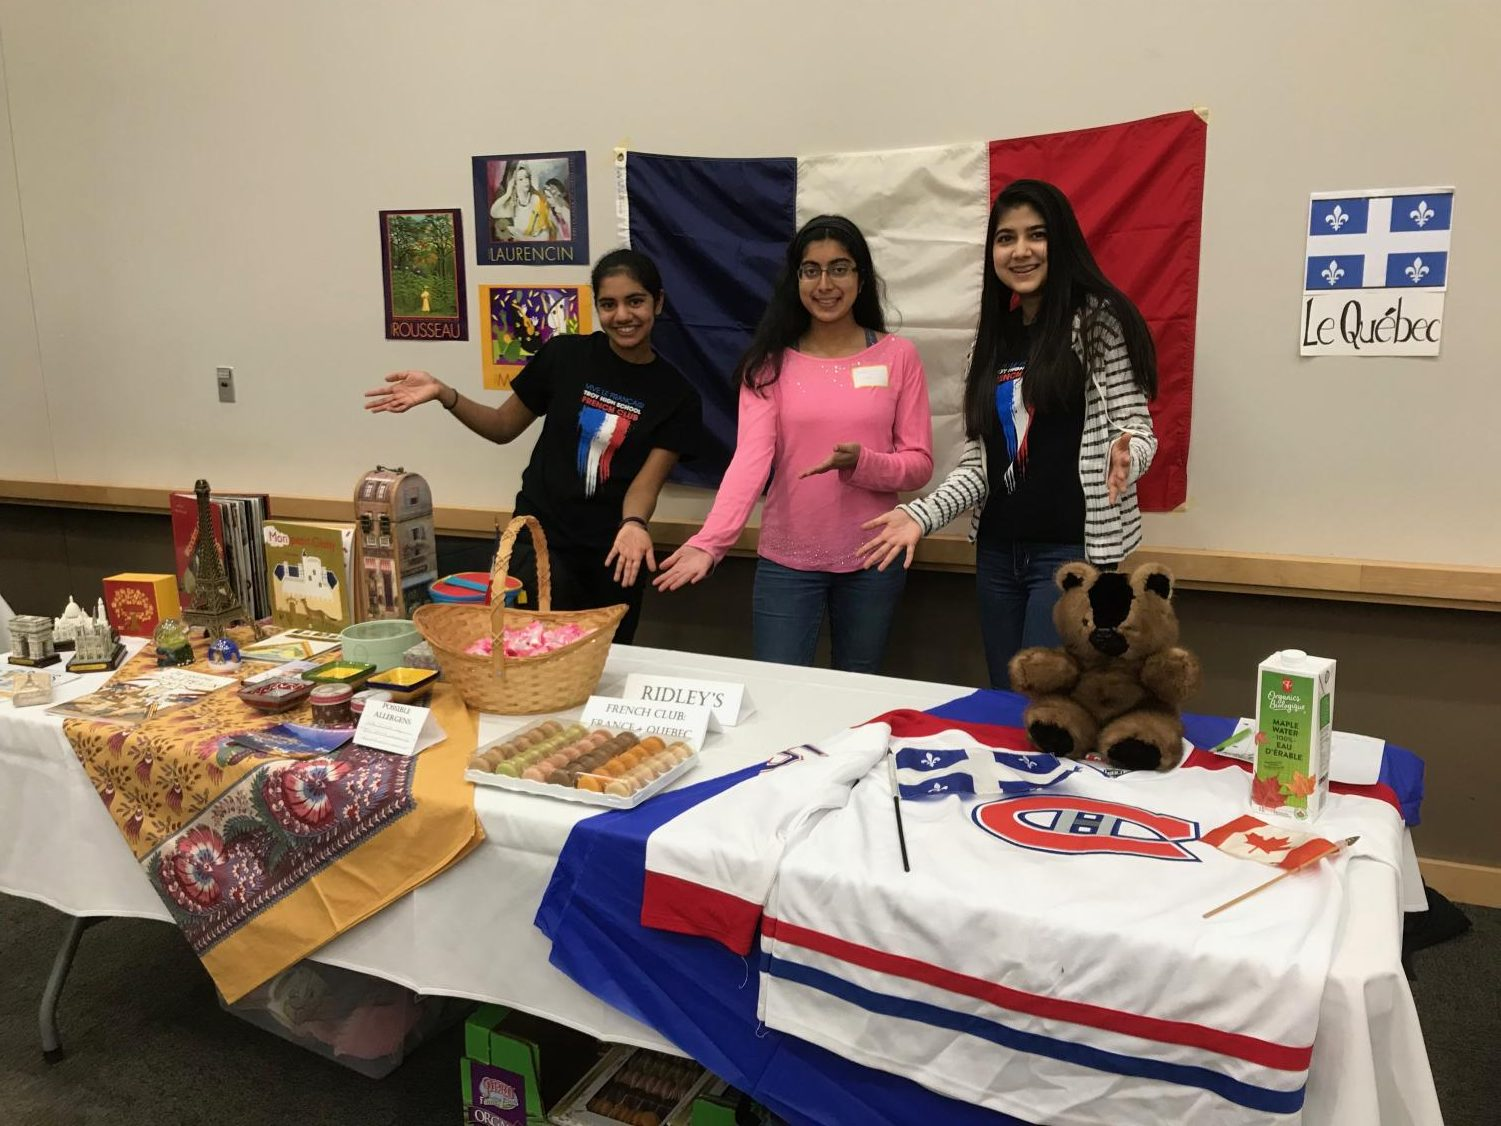 French Club with their table representing France and the French-speaking Canadian province of Quebec.